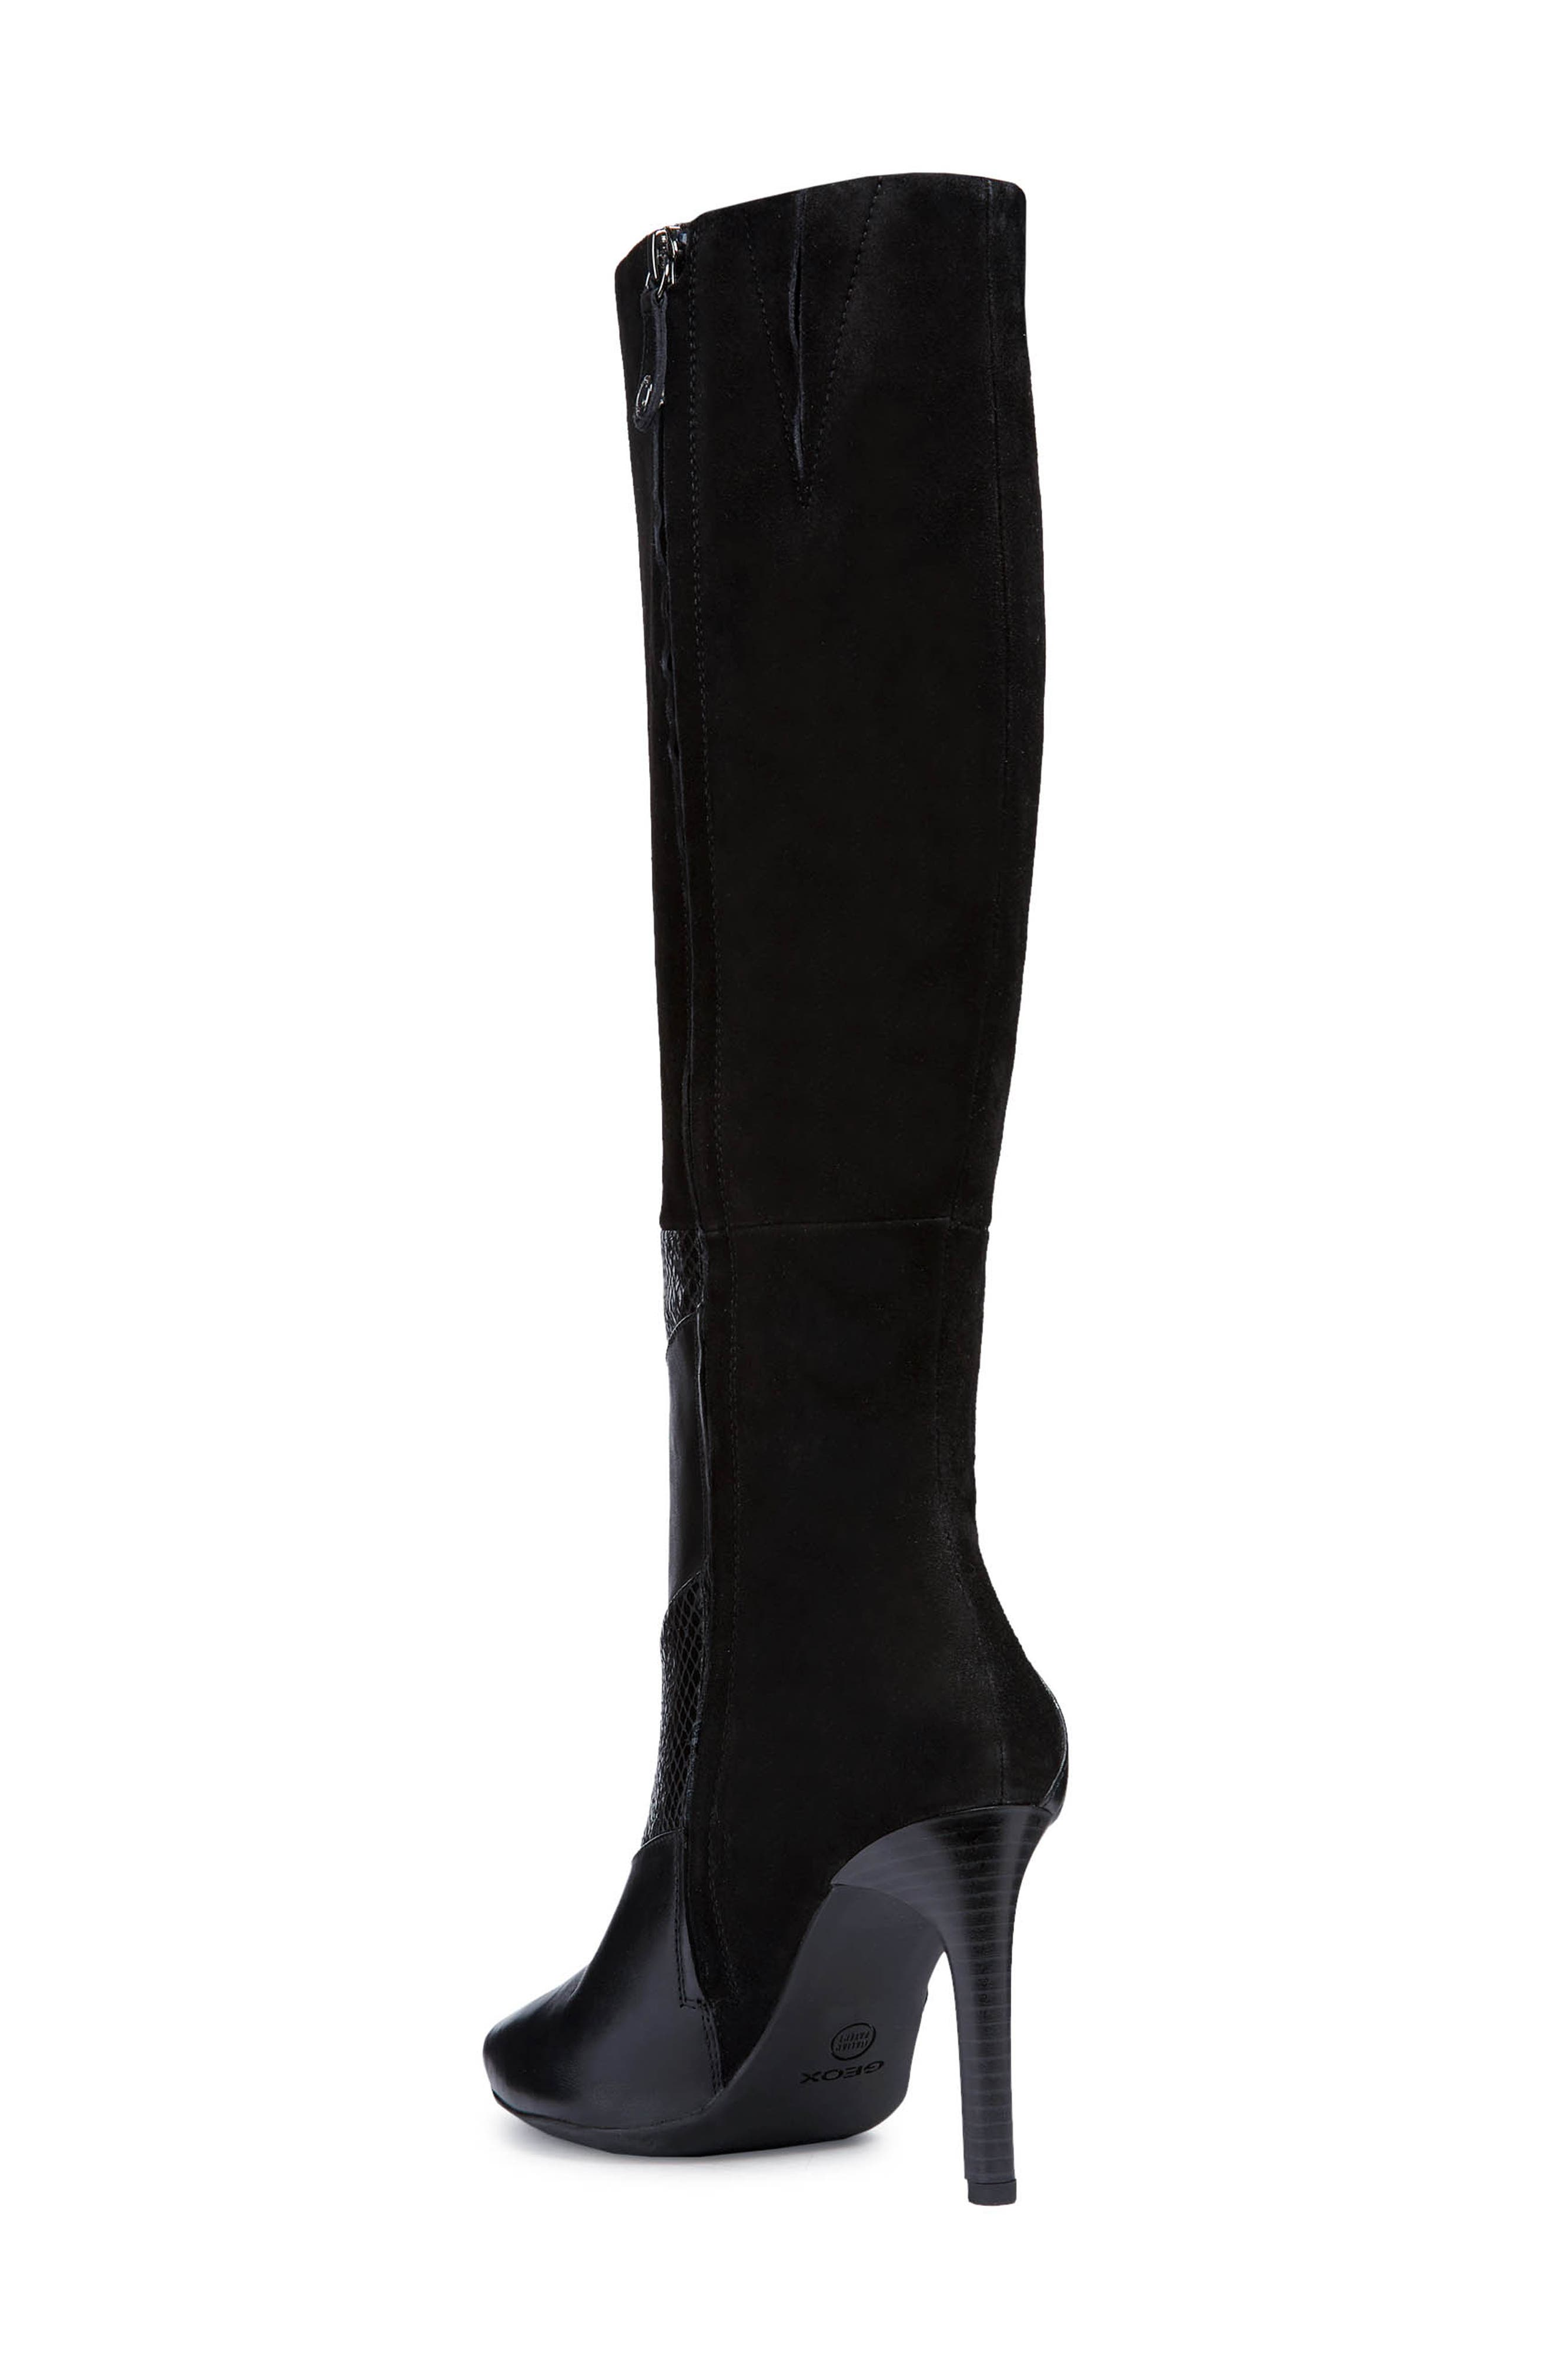 GEOX, Faviola Knee High Boot, Alternate thumbnail 2, color, BLACK LEATHER